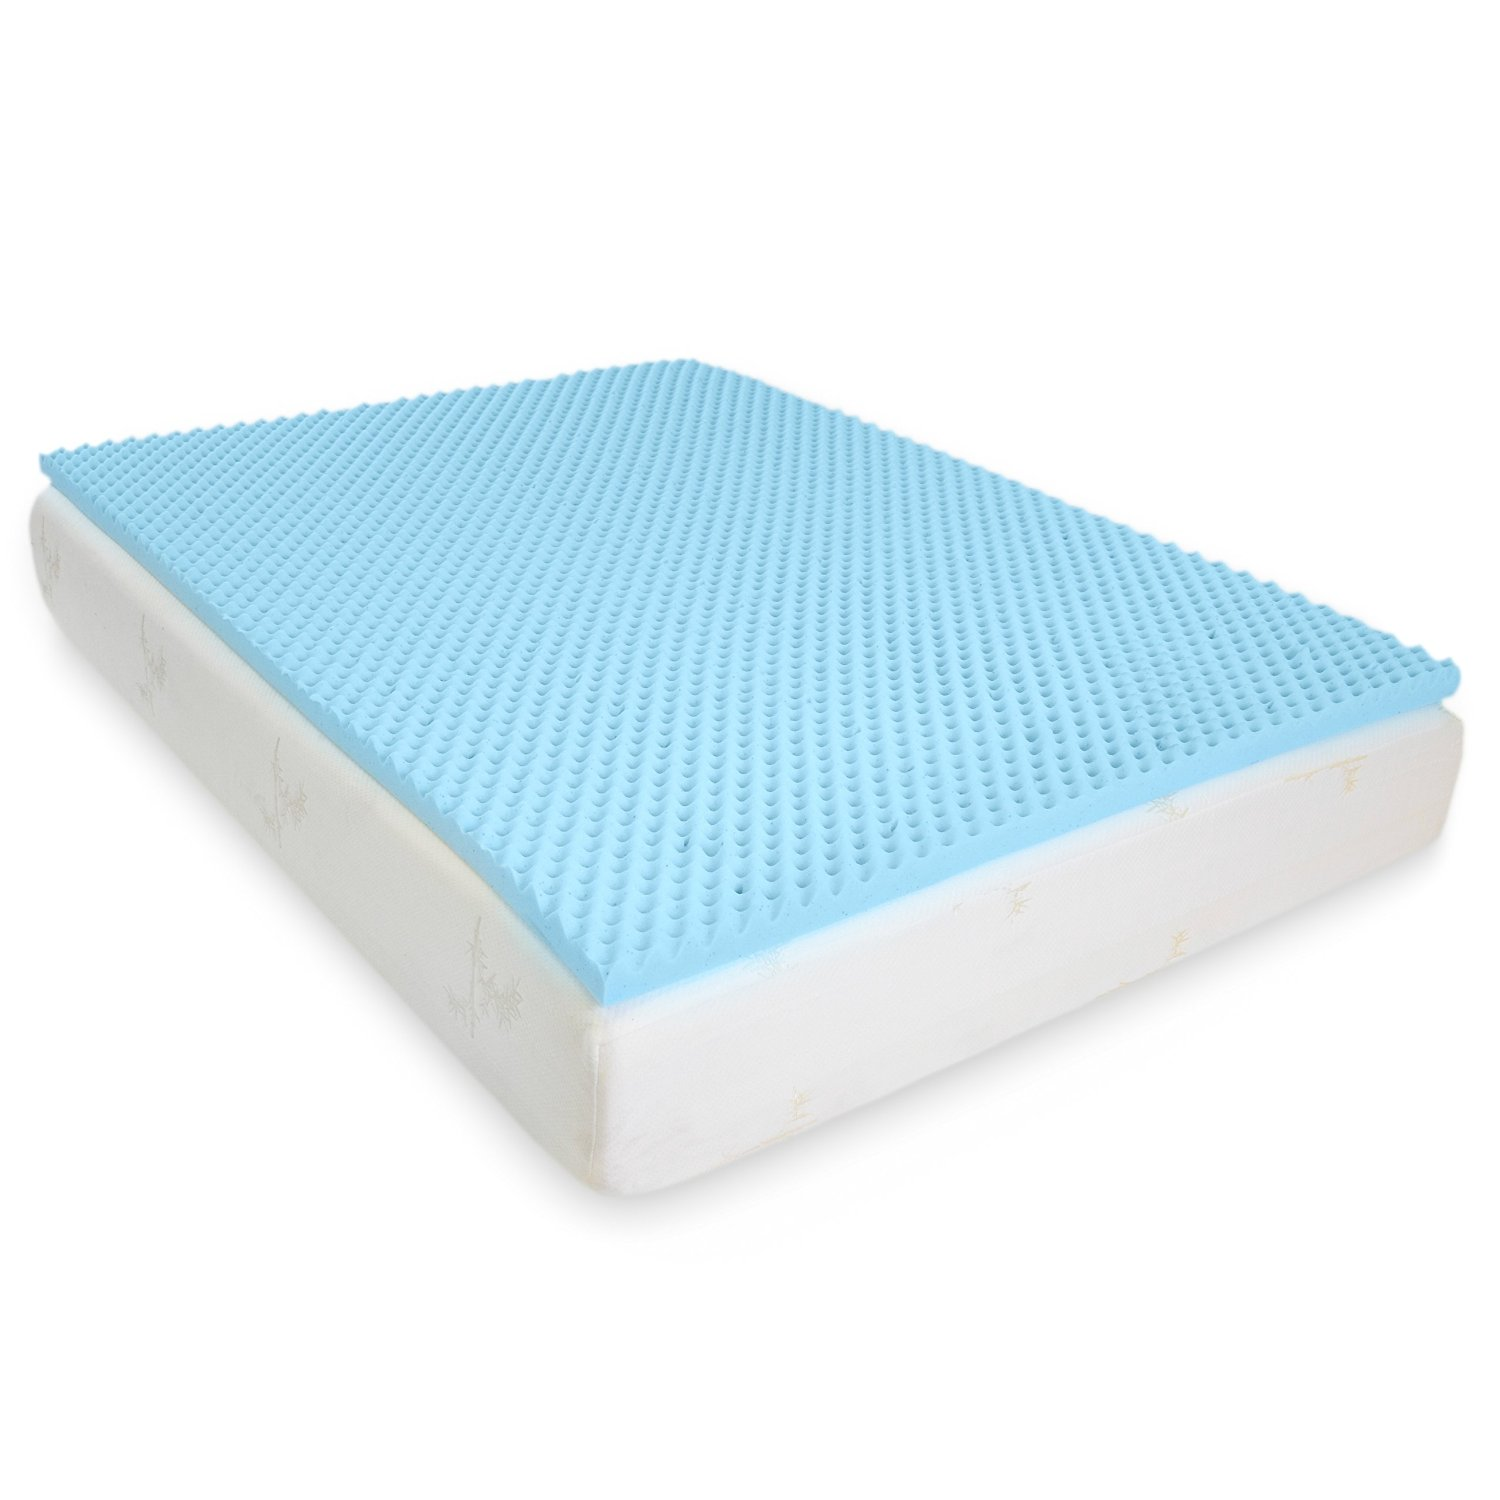 Foam Mattress Pad Ultimate Sleep Dunlop Latex Mattress Pad Toppers Comforpedic Loft From